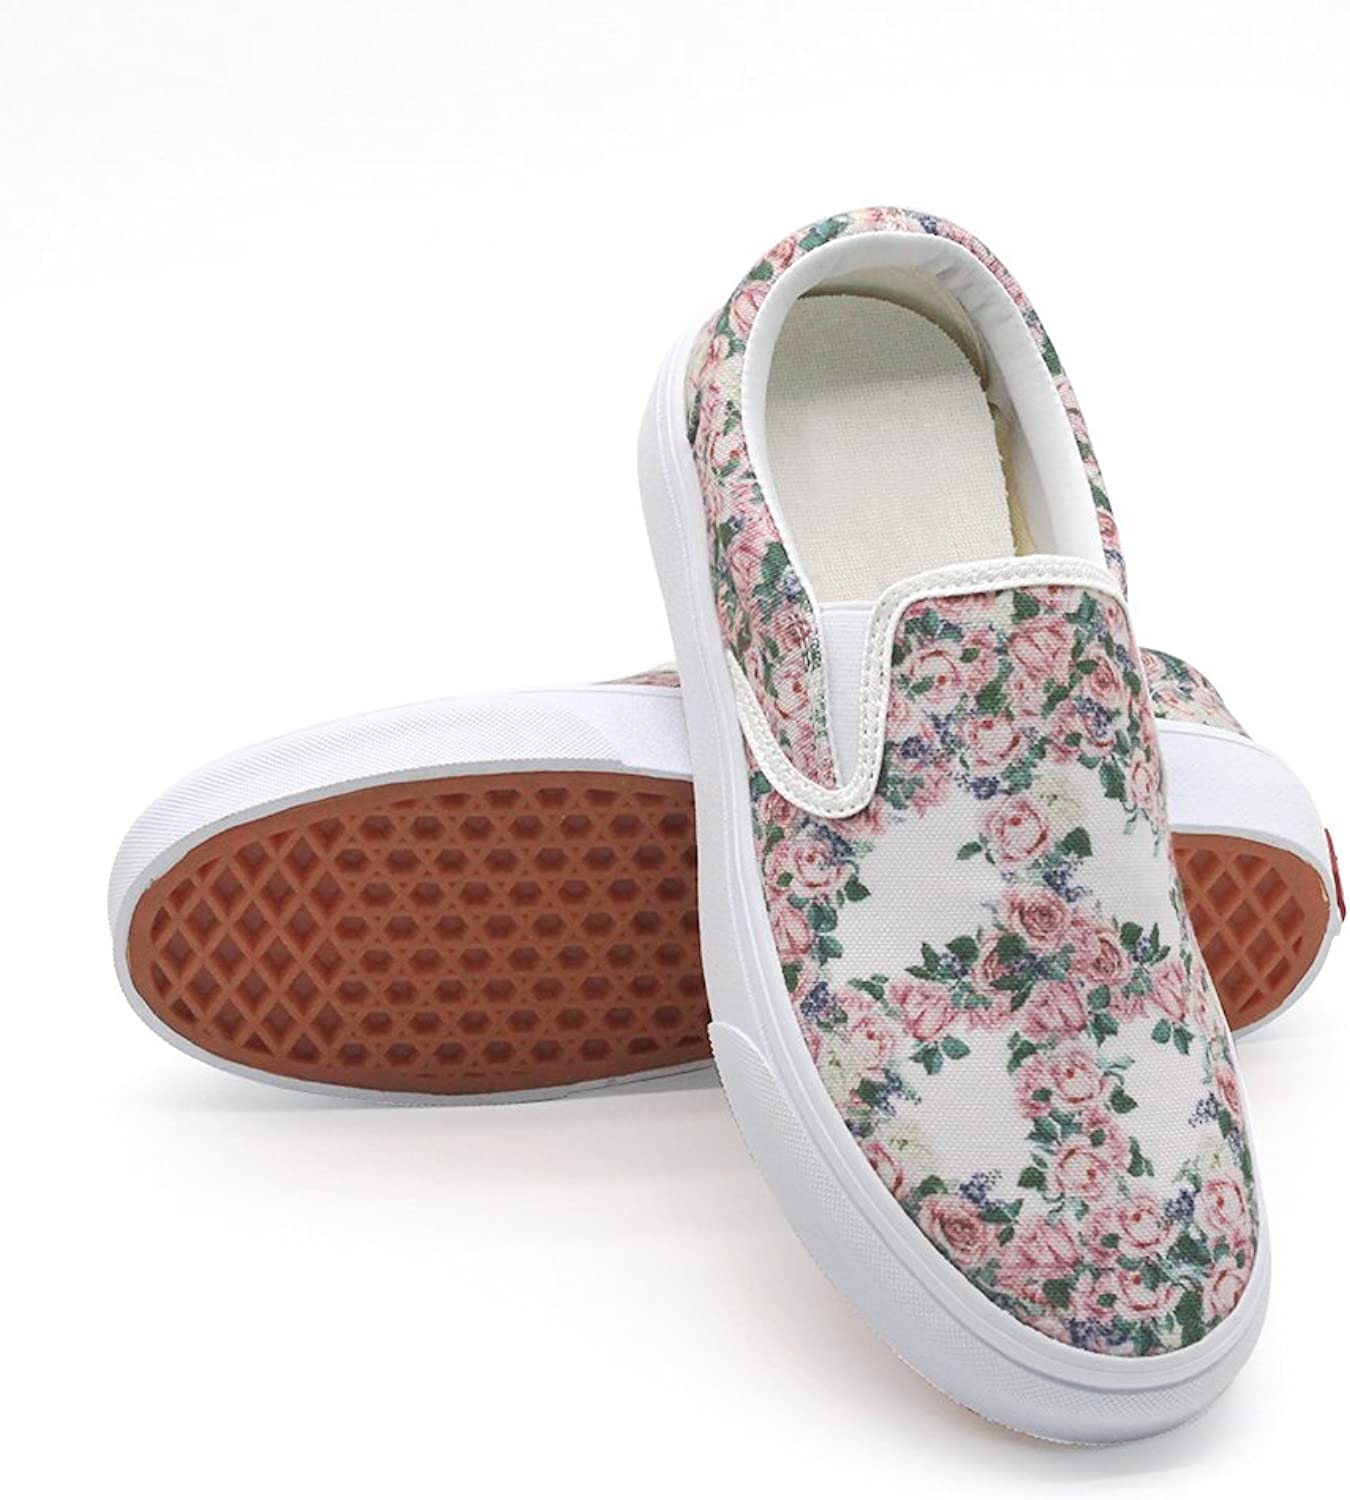 PFL STORE Women's Lightweight Running Race Jogging shoes with Floral Peace Sign